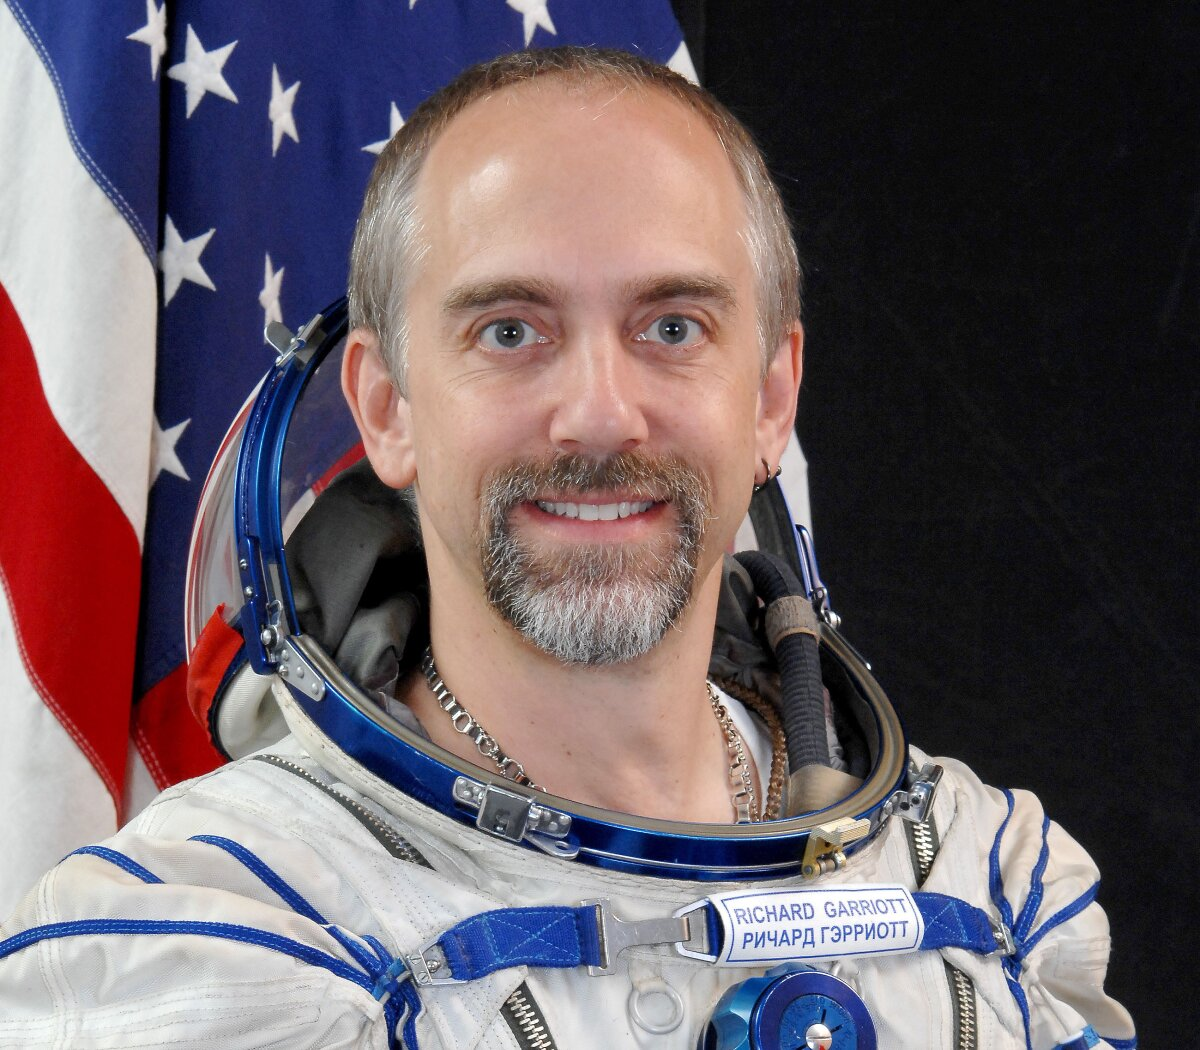 Richard Garriott, kosmonauta, NASA